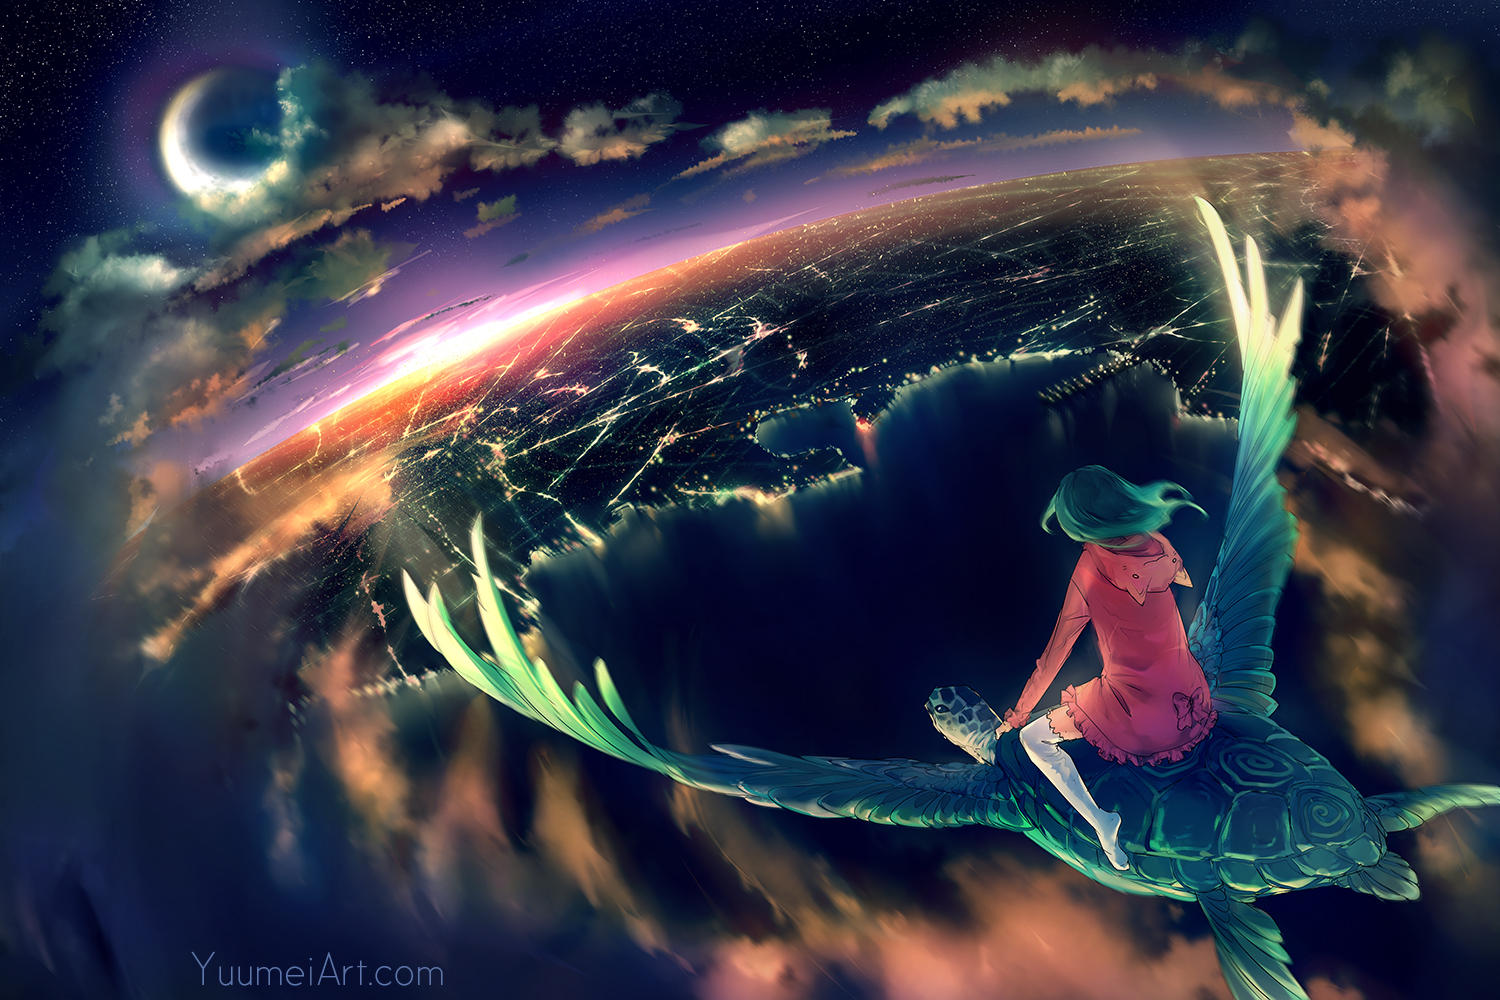 Dreams Of Flight (speedpaint tutorial linked) by yuumei